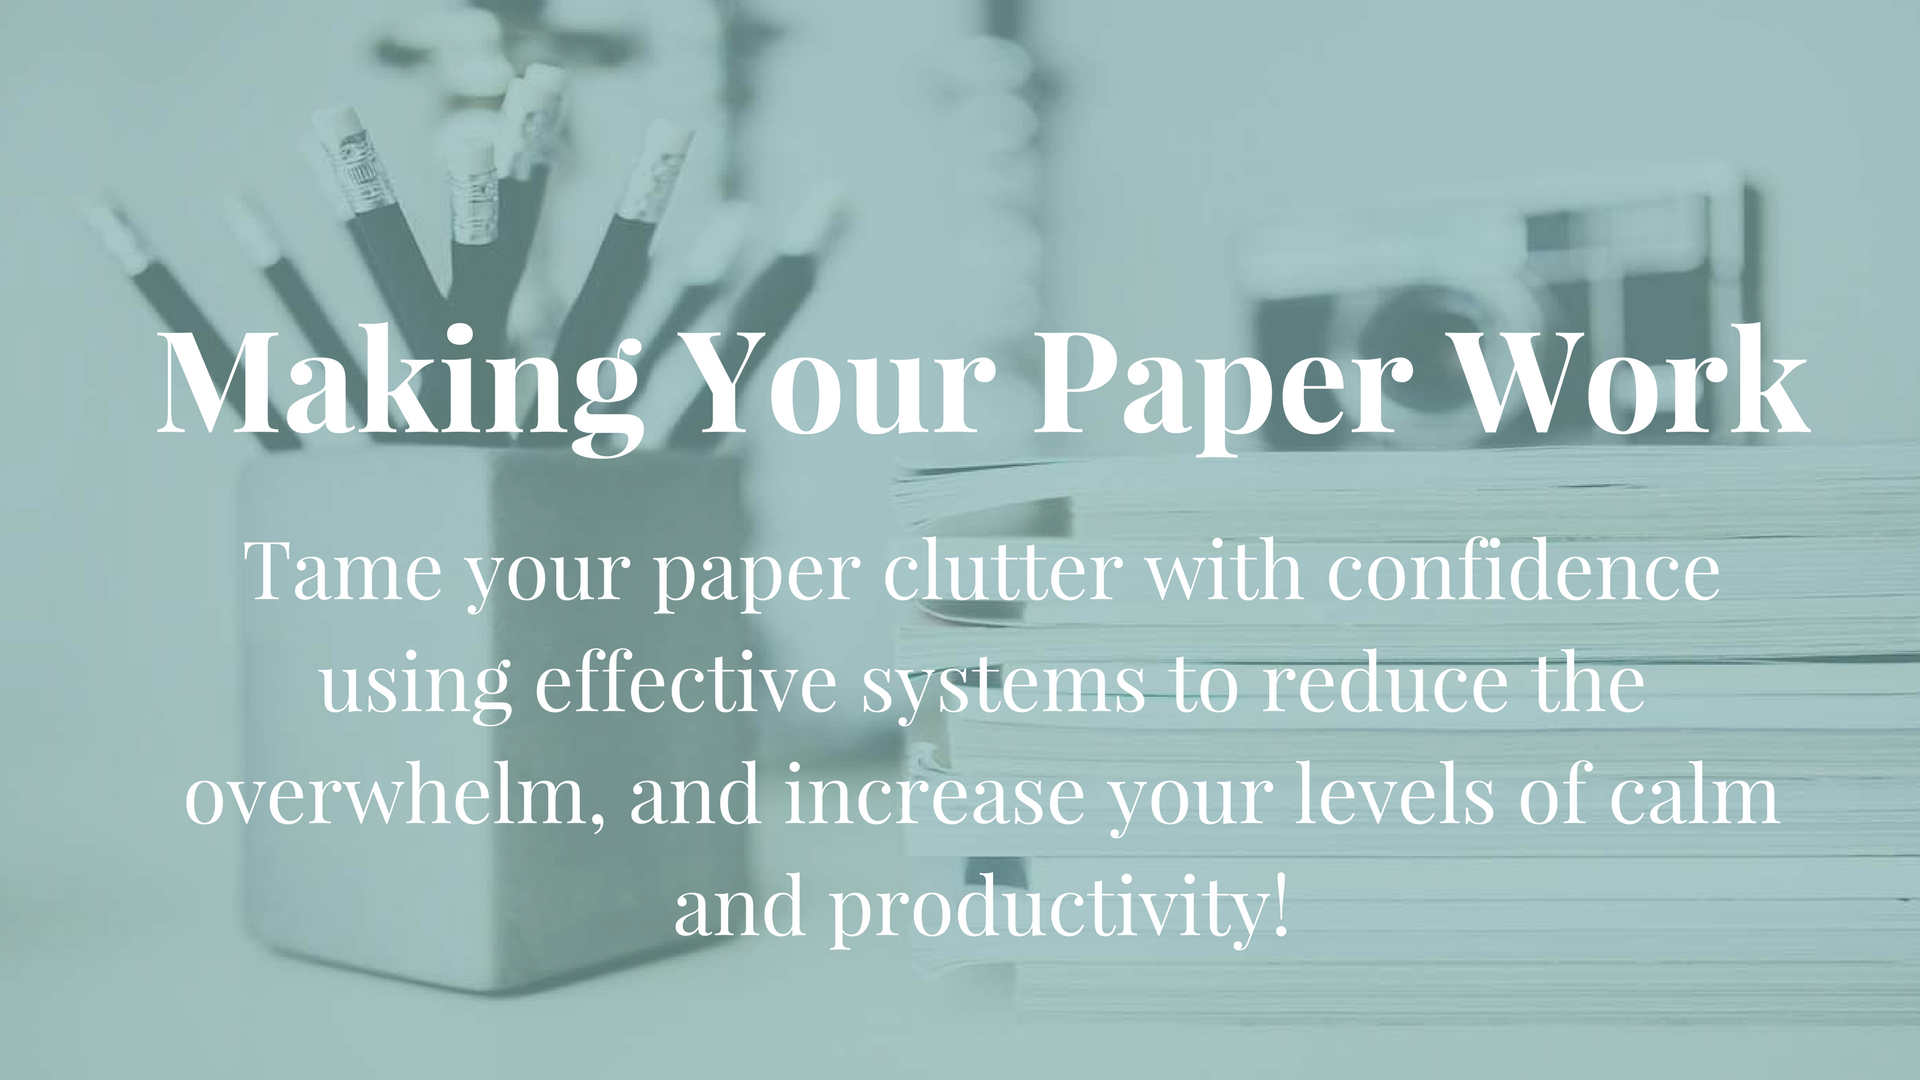 Making Your Paper Work  - a live online program from The Organised You to help you learn how to create effective paperwork systems for your home, ditch the overwhelm, and confidently tackle the paper clutter!